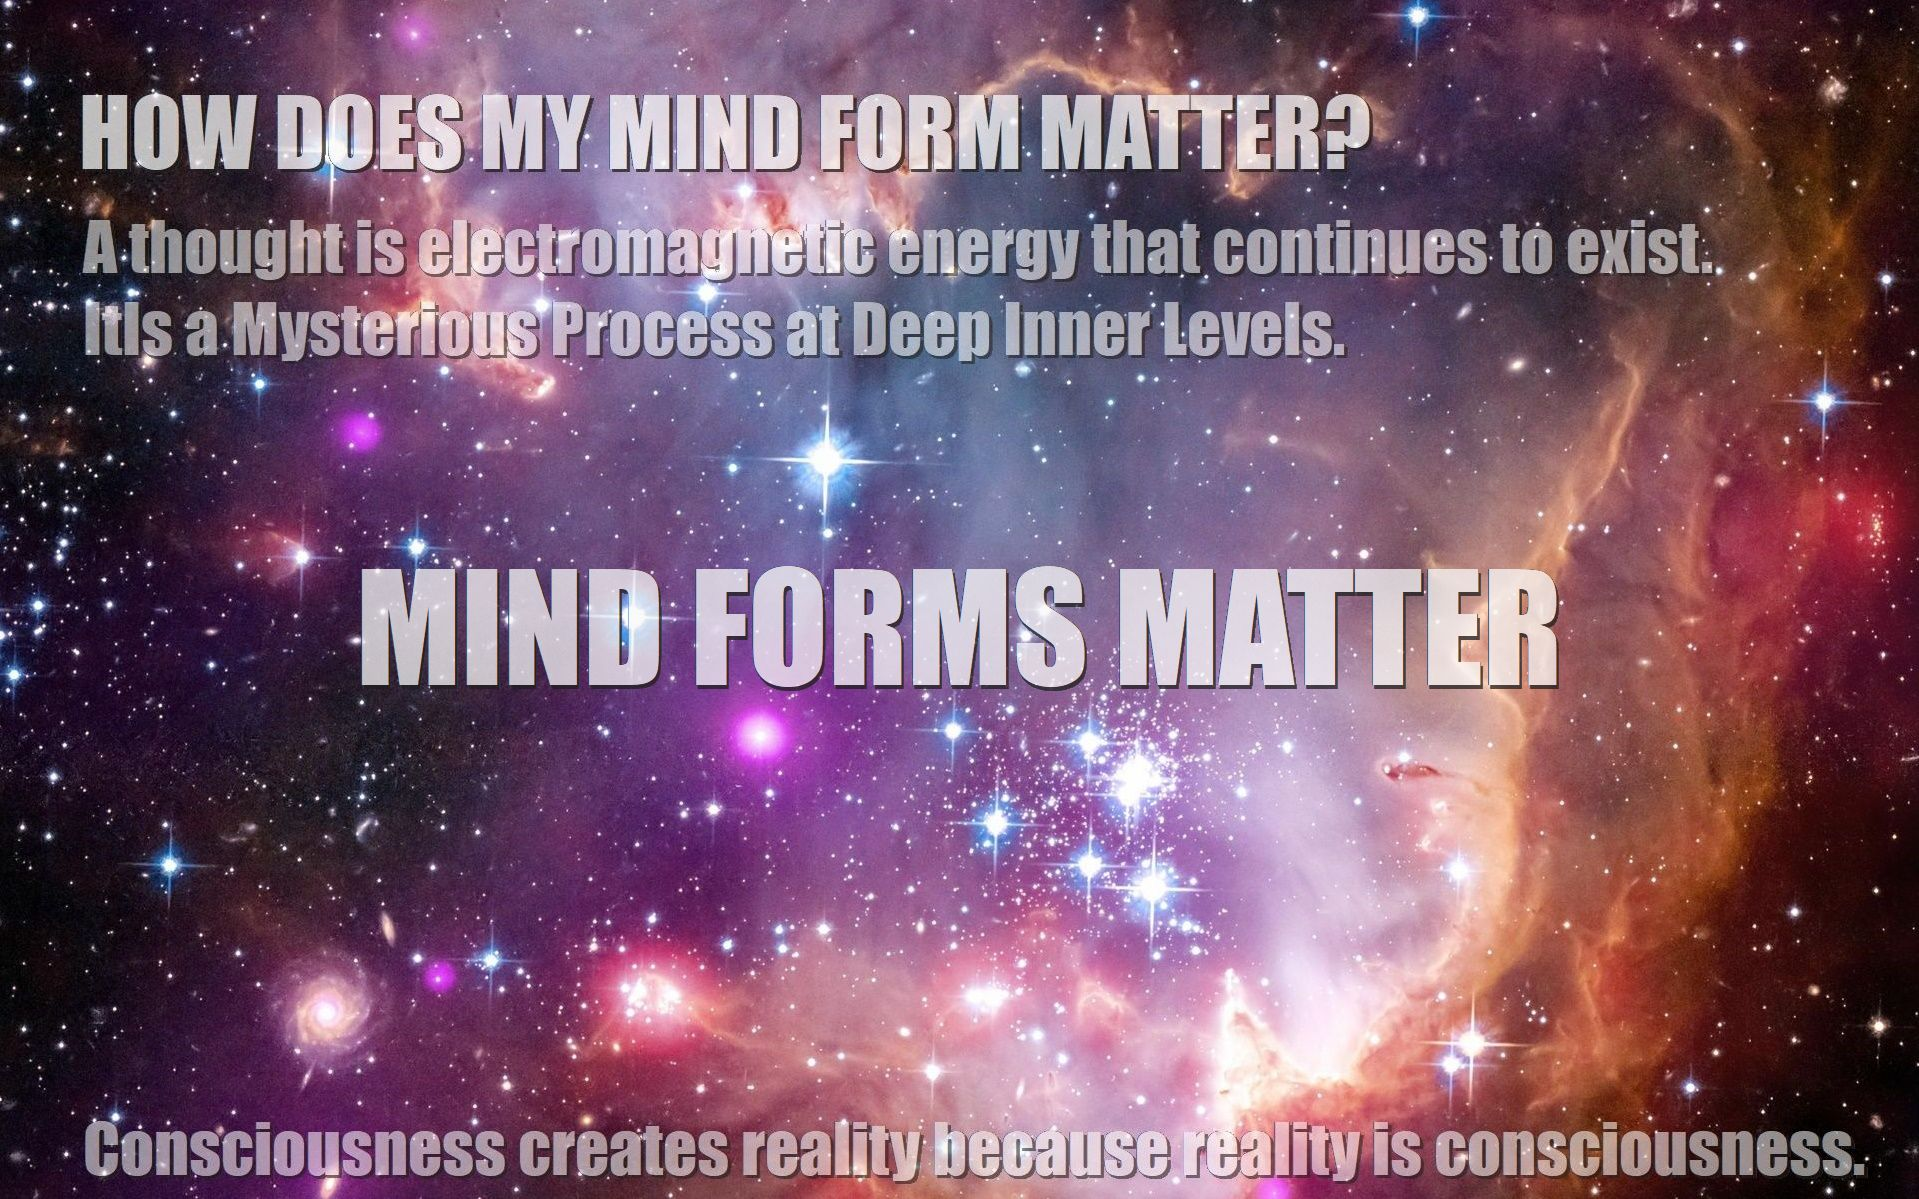 does-consciousness-create-reality-how-do-my-thoughts-create-matter-reality-gx-1919